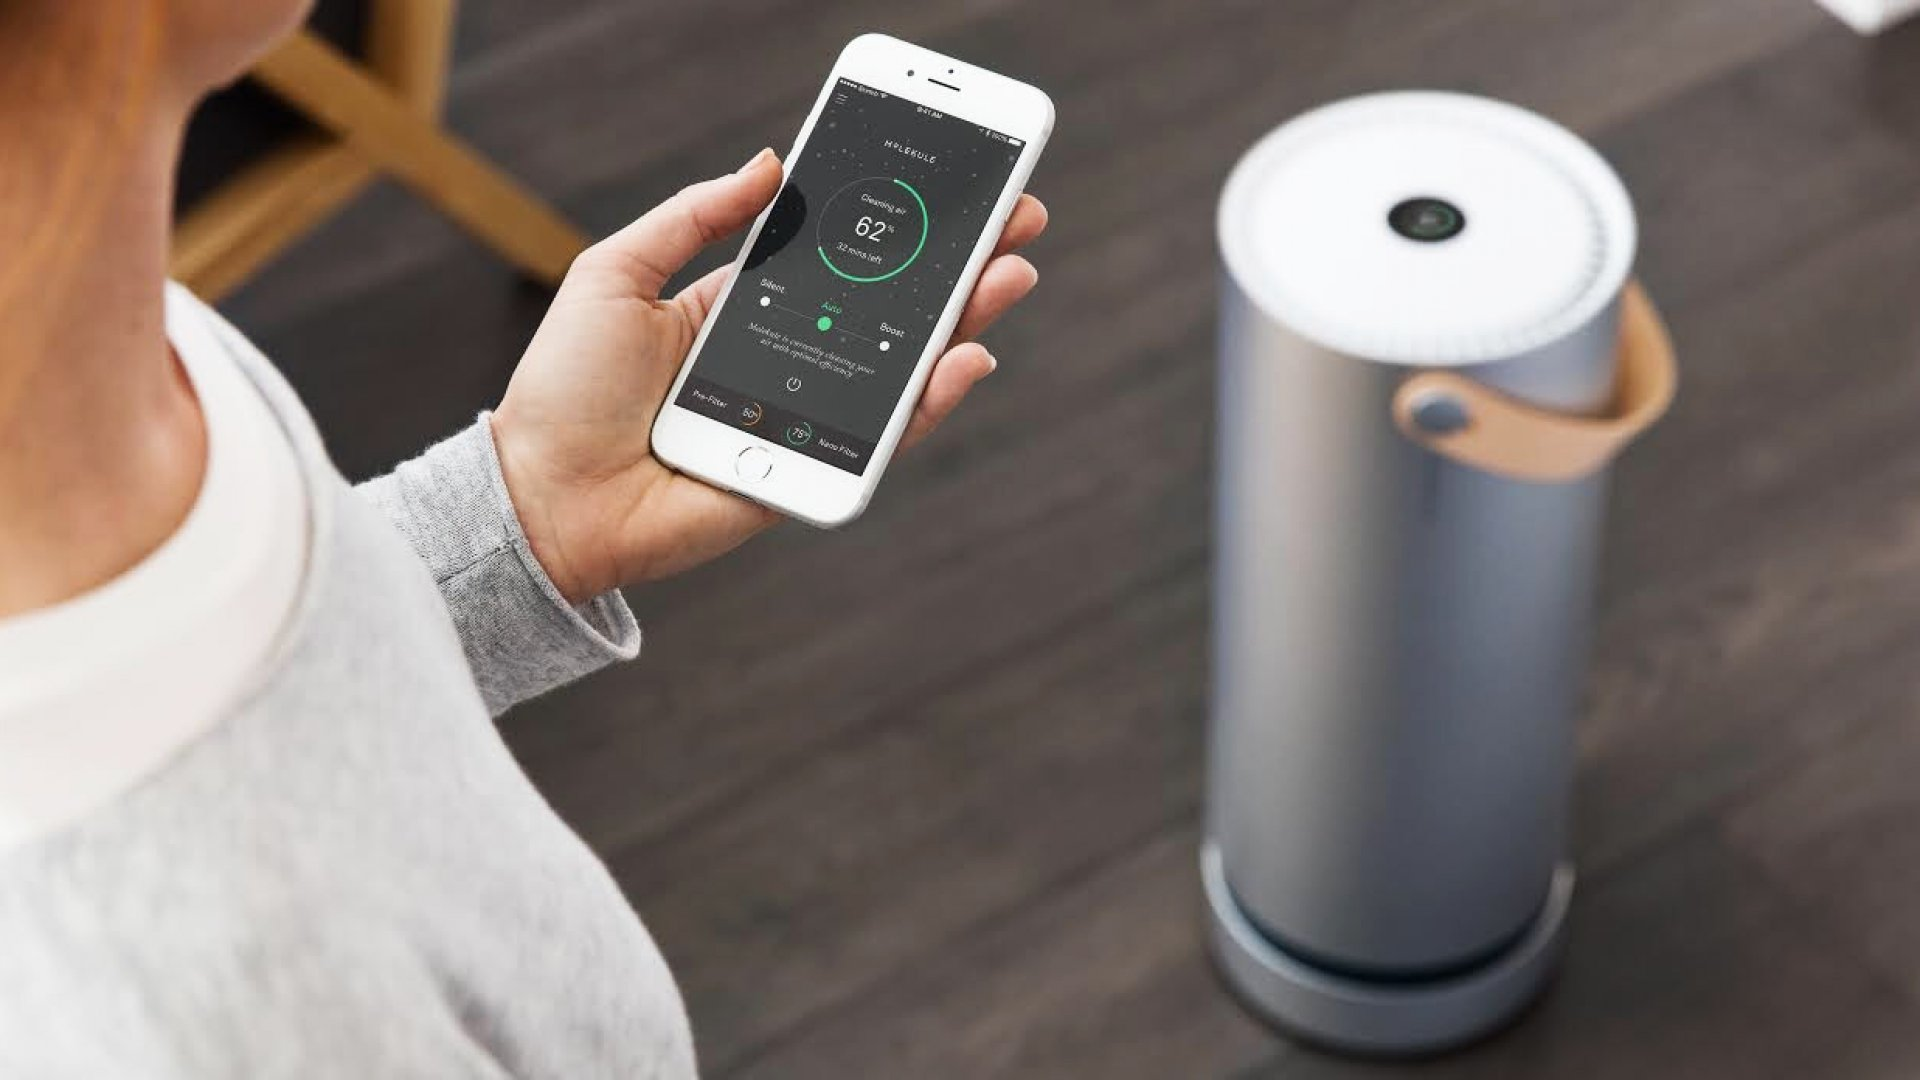 This Family-Run Startup's 20-Year Journey to Create the World's Most Powerful Air Purifier